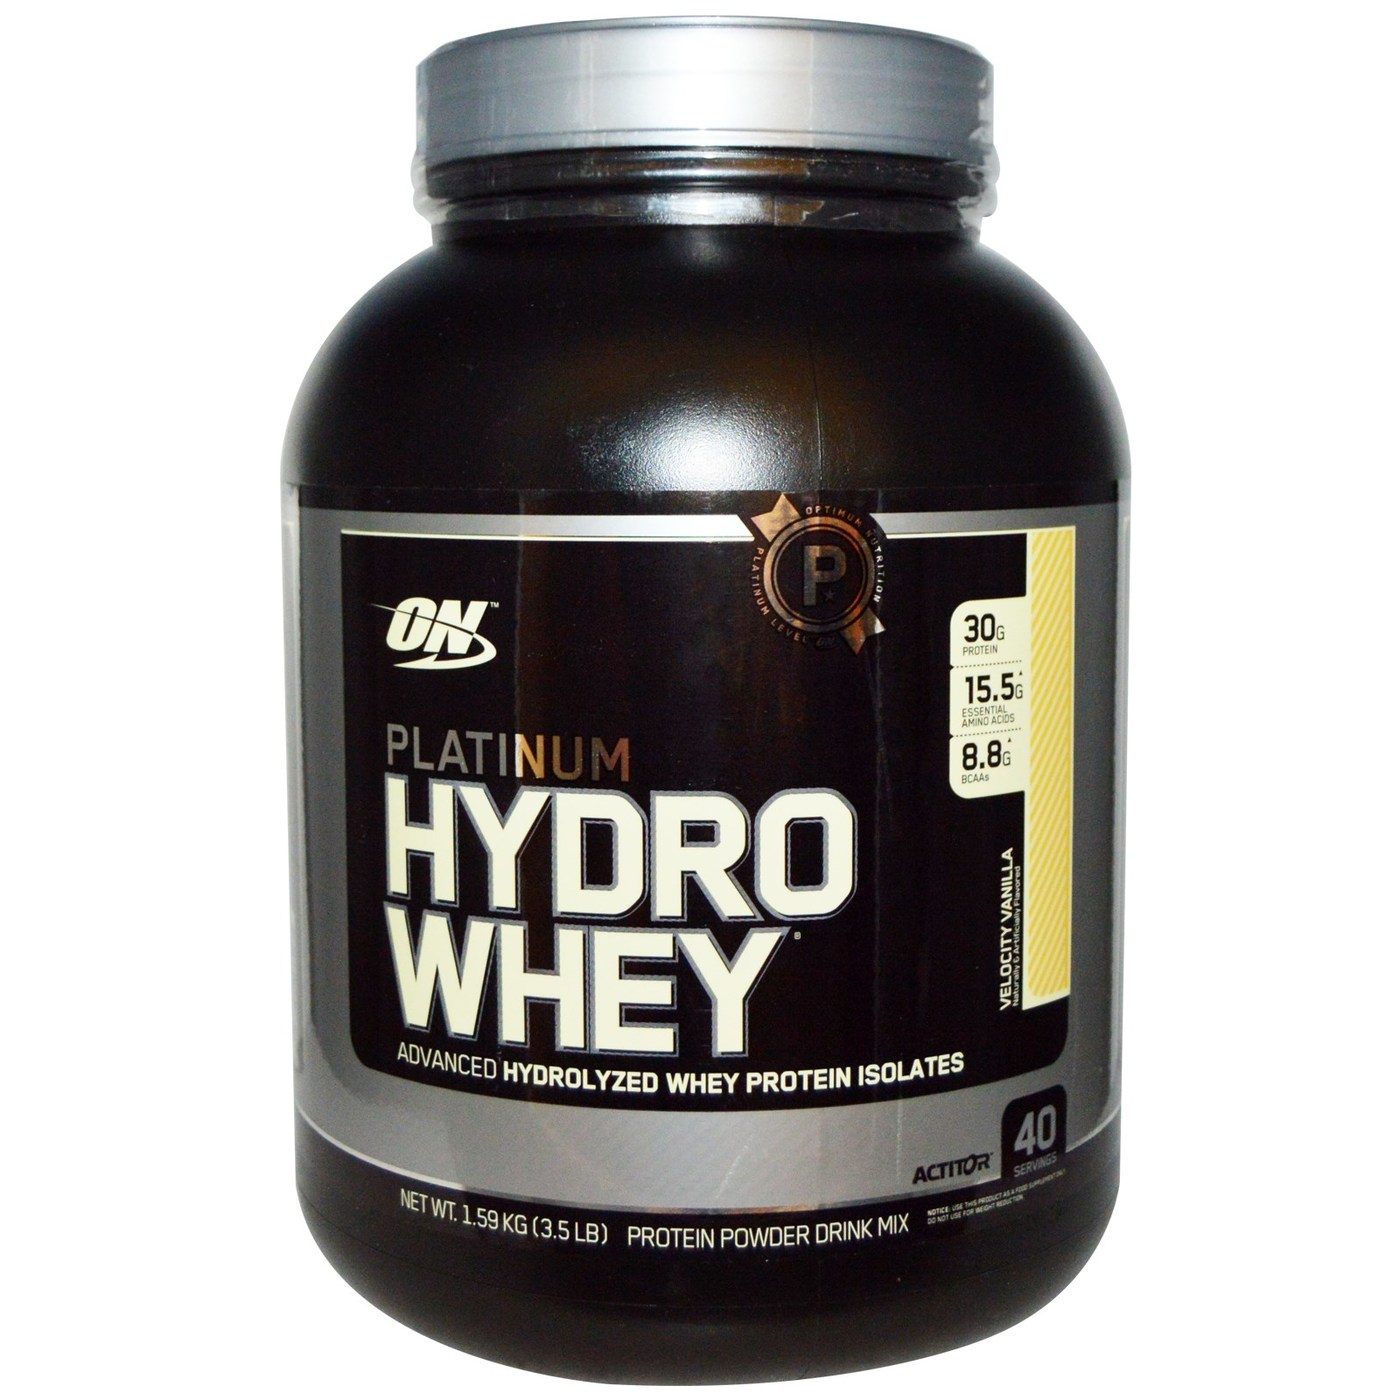 What is hydro whey